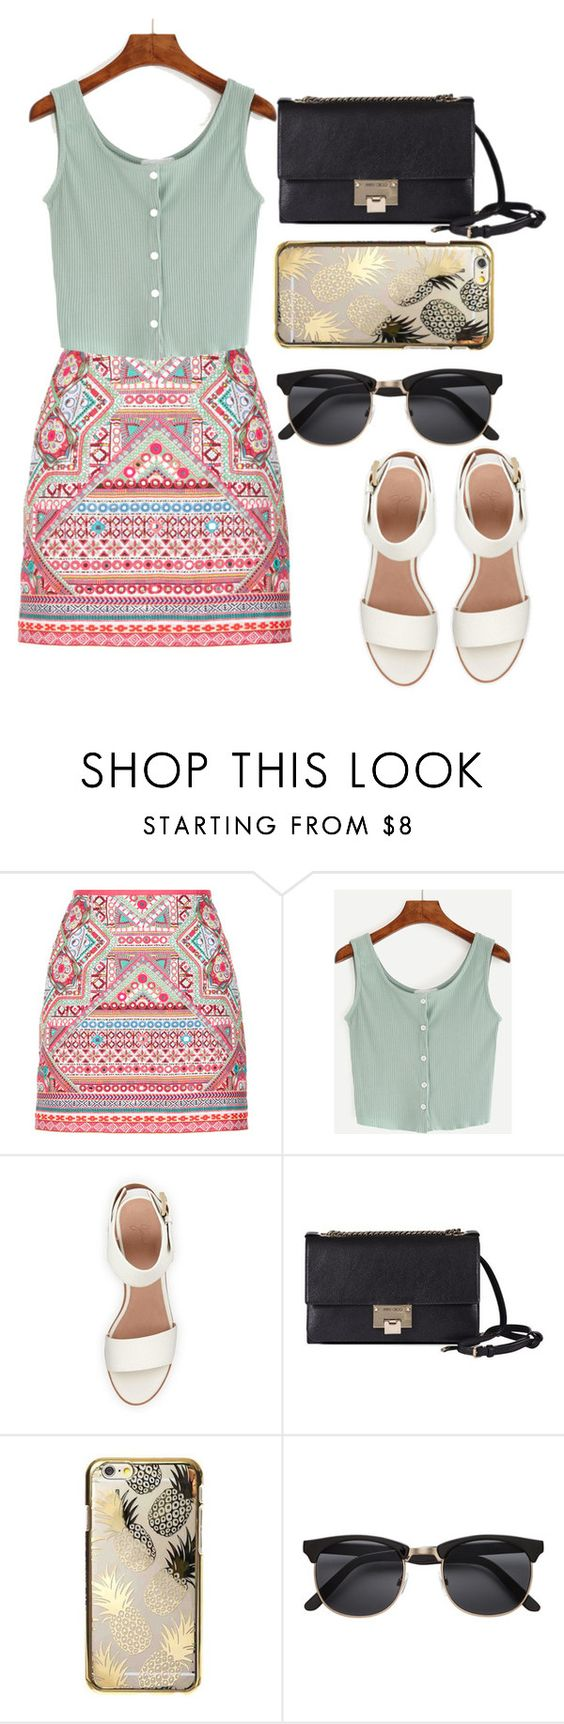 """Fashion"" by camillyraiterb ❤ liked on Polyvore featuring Accessorize, BEA, Jimmy Choo, Skinnydip, moda and polyvorefashion"